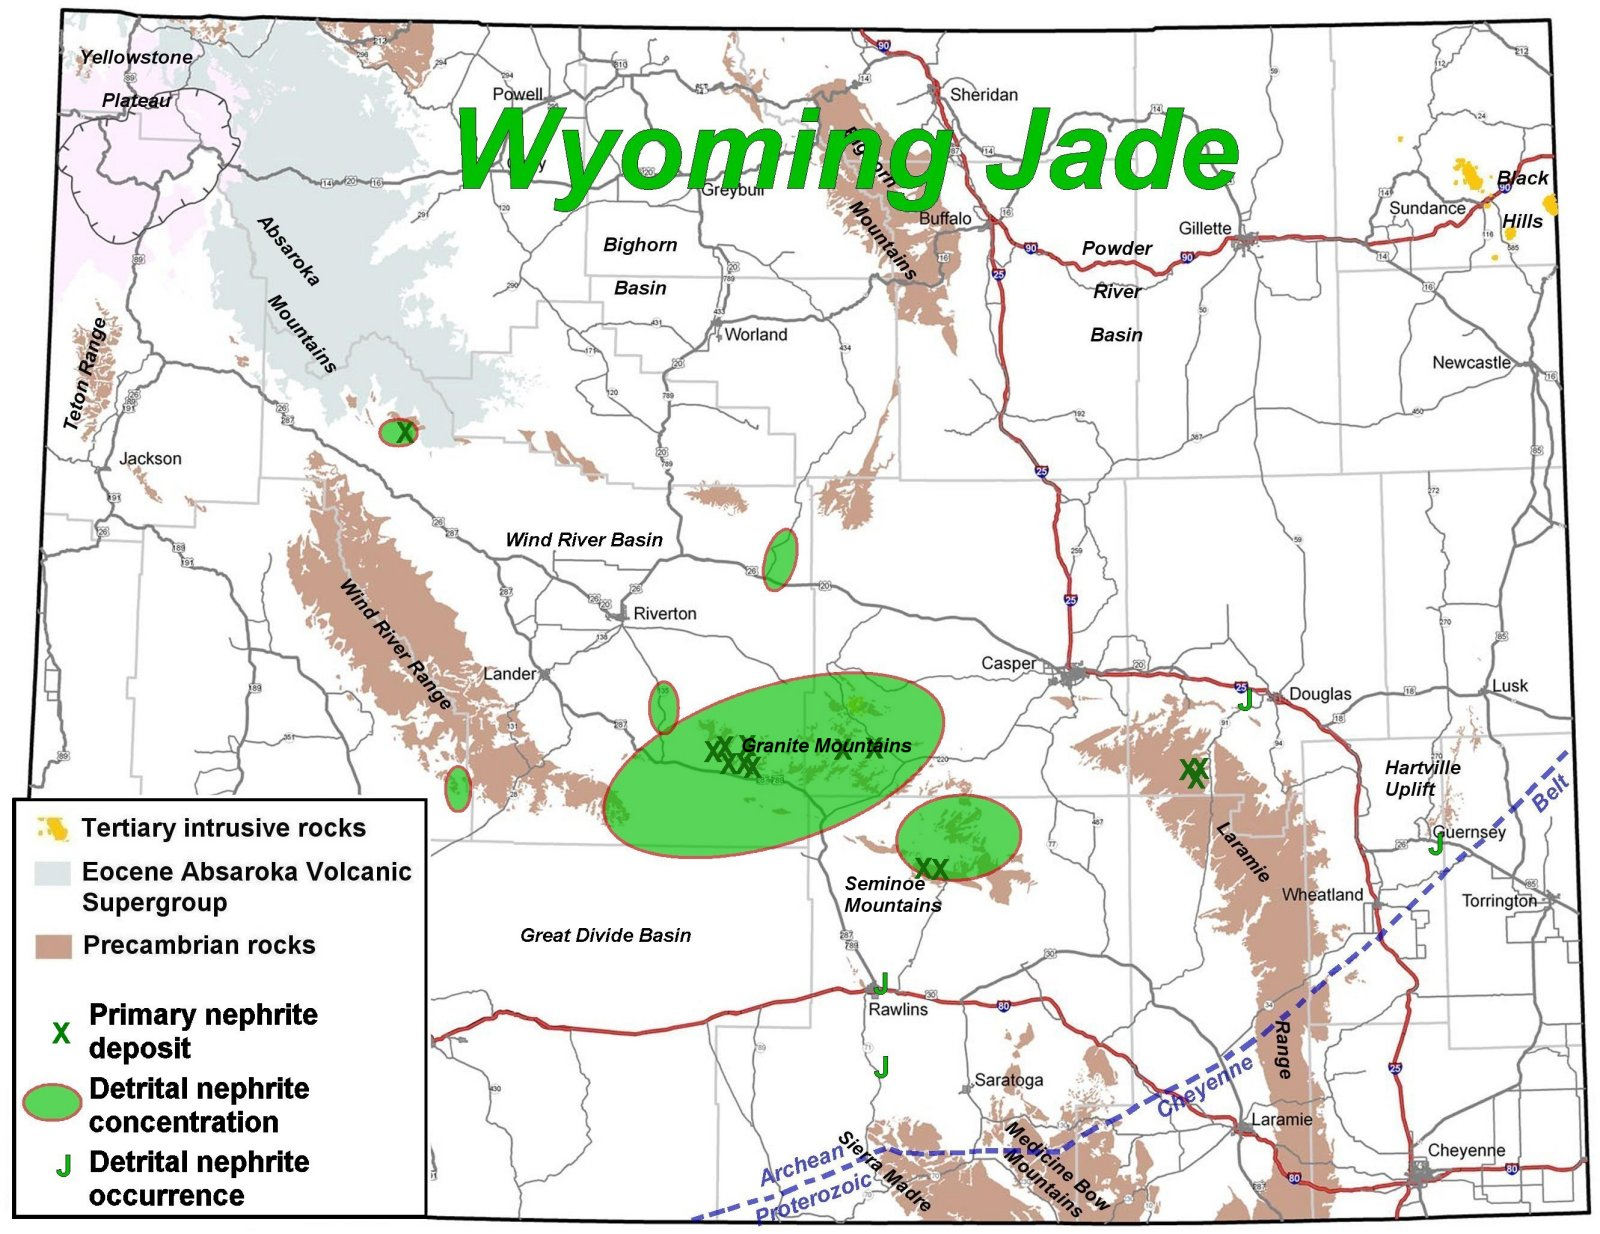 Click image for larger version  Name:WyomingJade-Small.jpg Views:505 Size:341.0 KB ID:191387